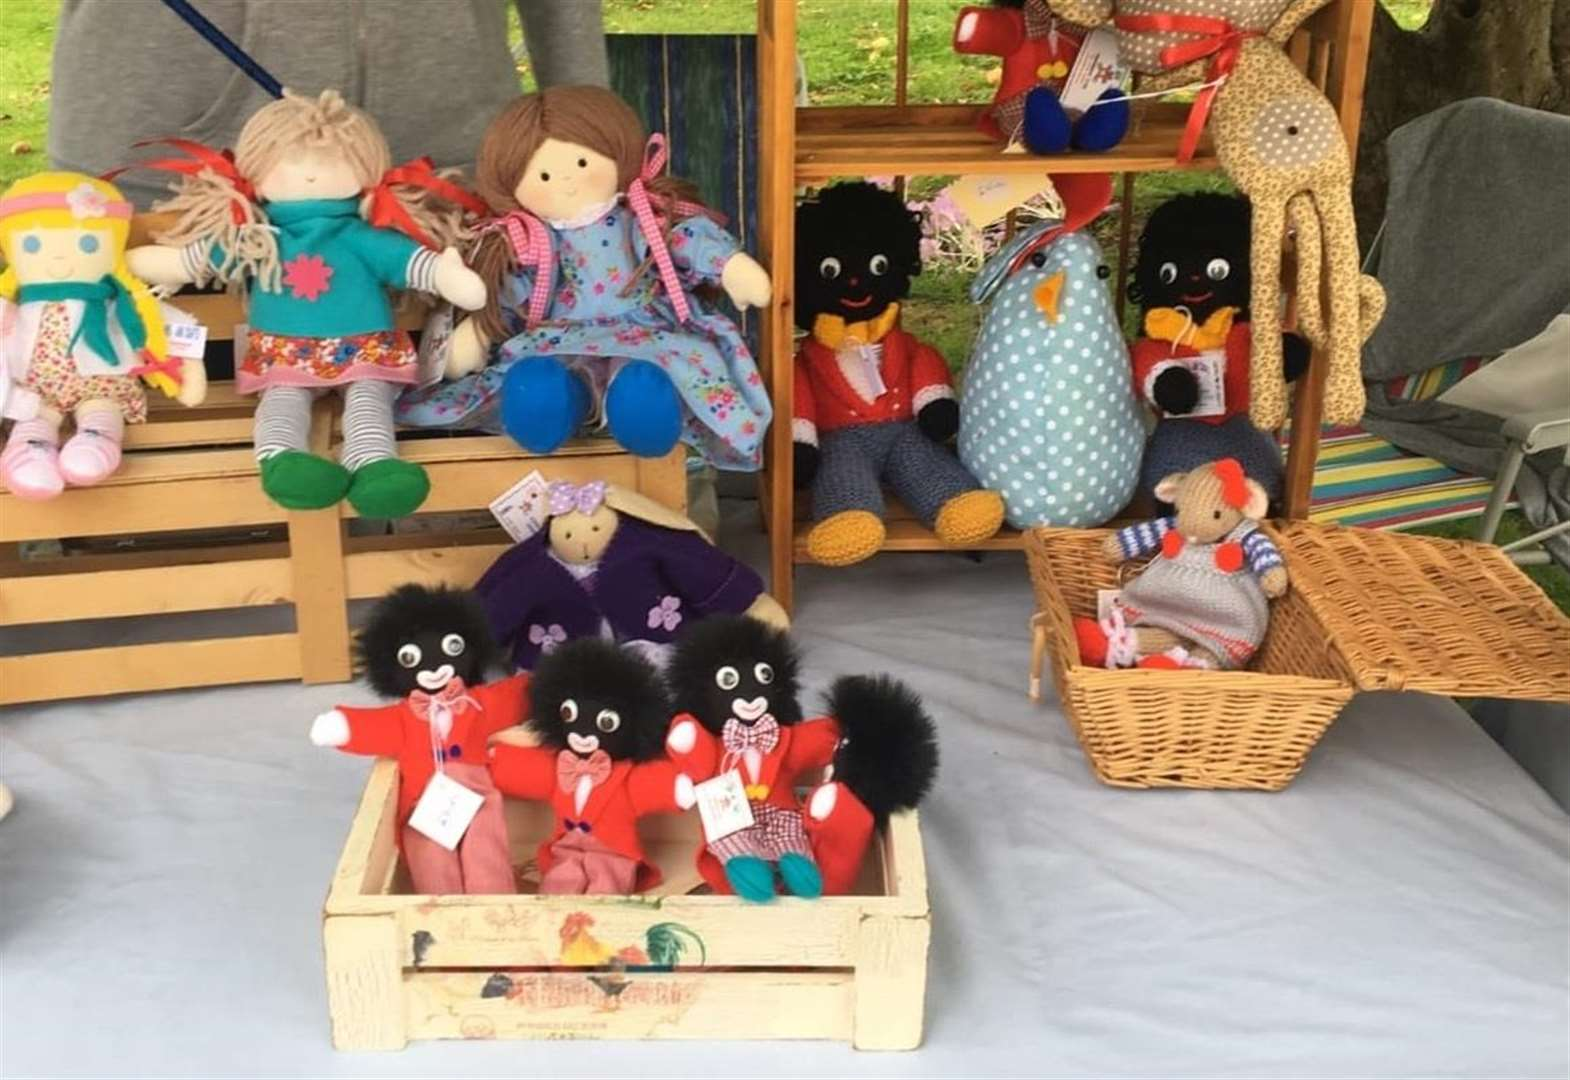 Charity event criticised for selling golliwogs